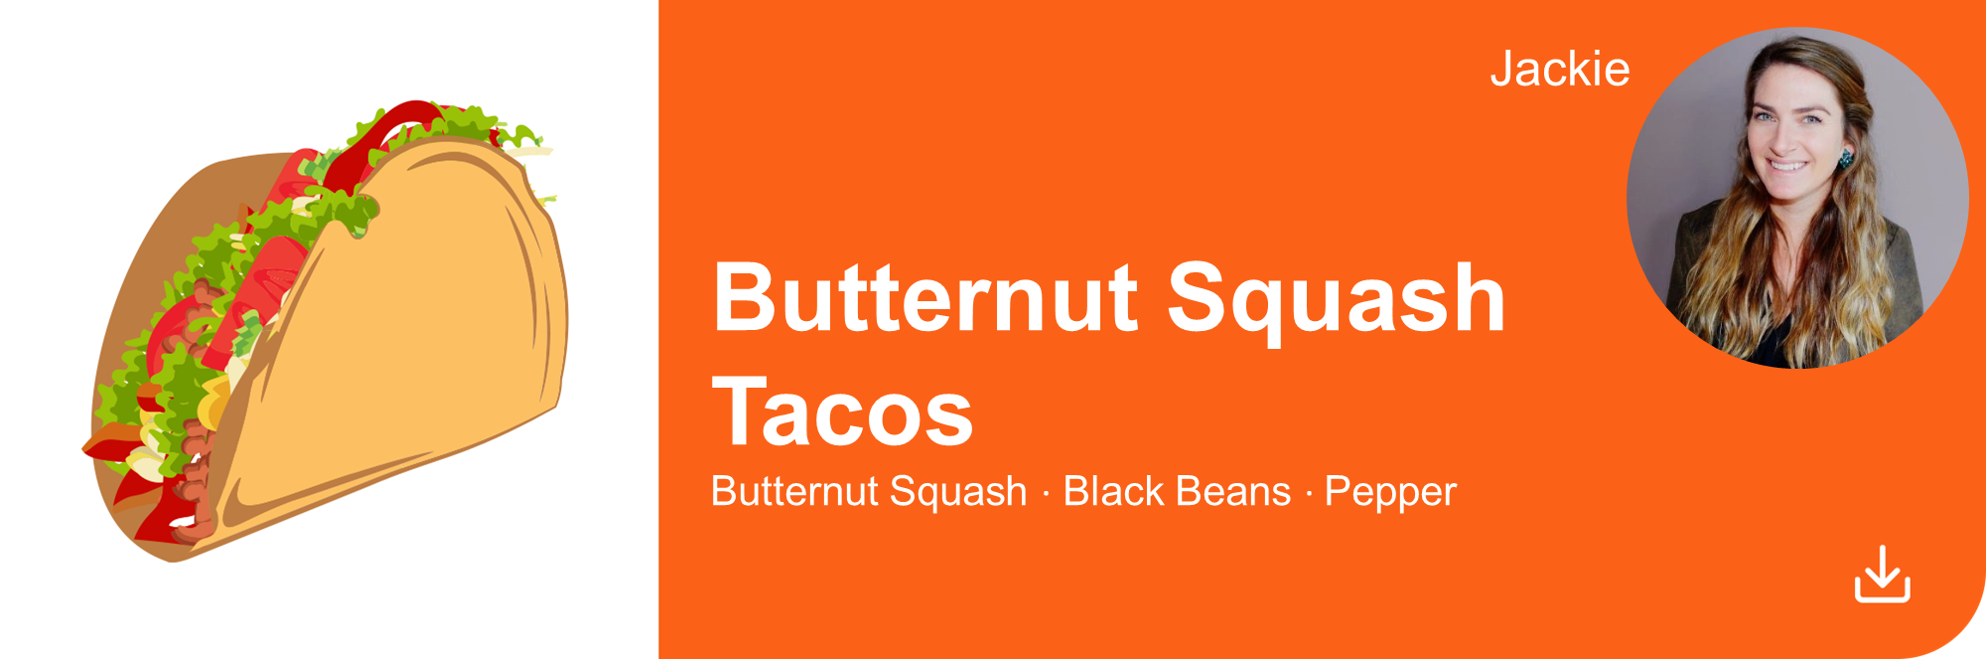 Creative Marketing Concepts QuarantineAndChill Butternut Squash Tacos Jackie